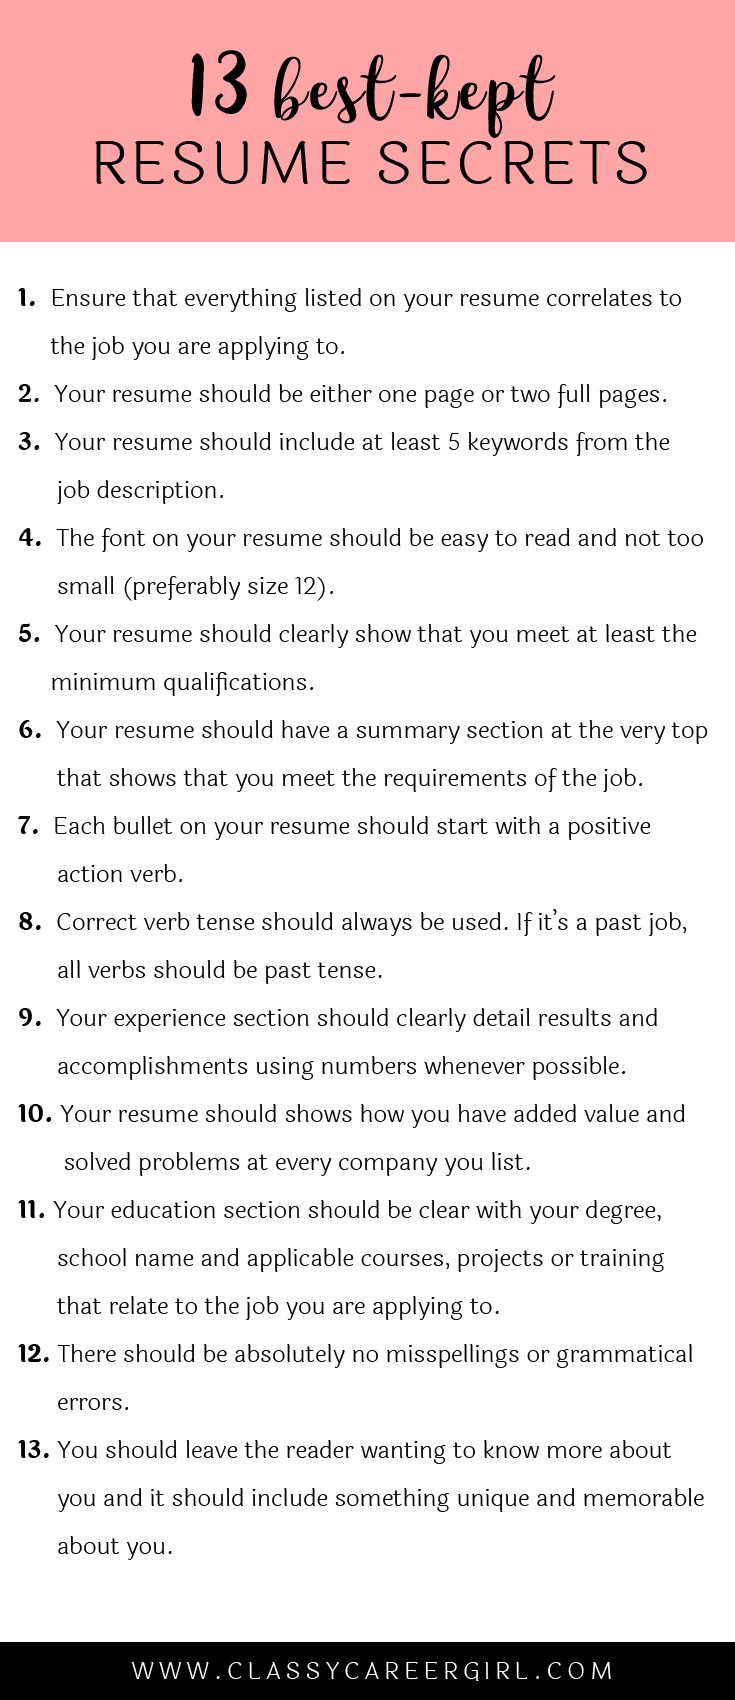 ideas about resume examples resume resume some hiring managers will toss your resume out if you don t know these 13